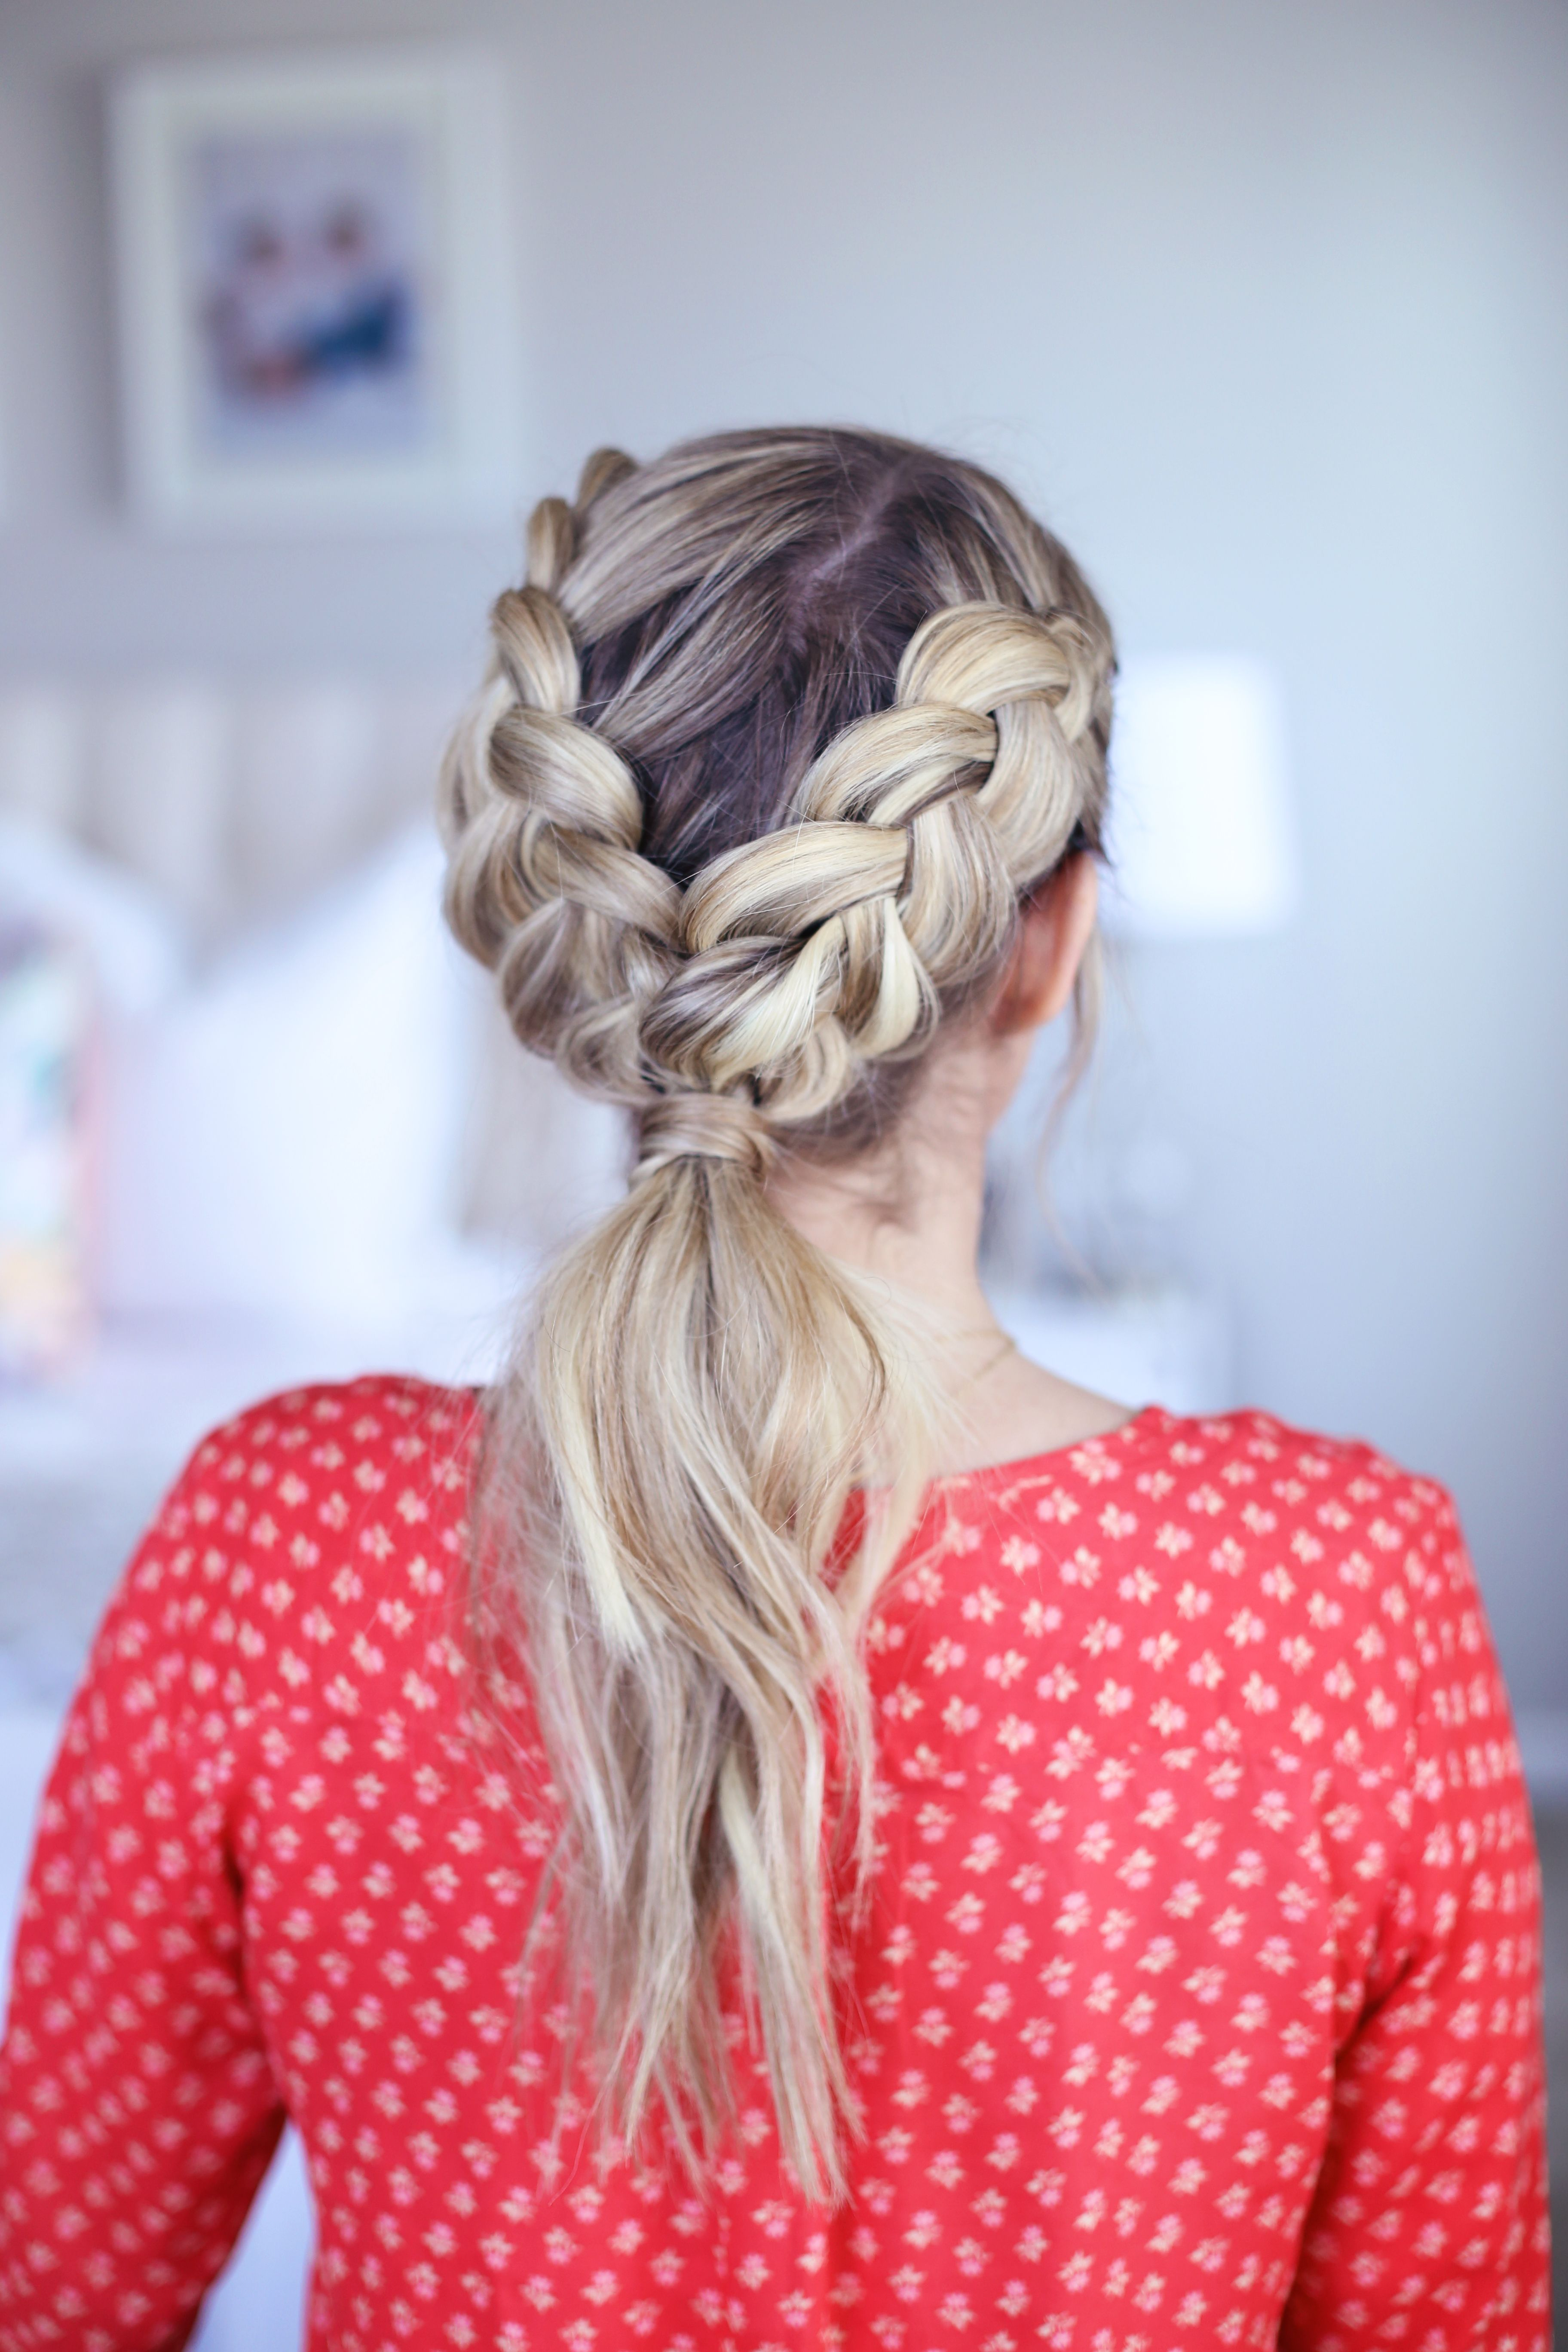 Double dutch ponytail cute girls hairstyles my style pinterest